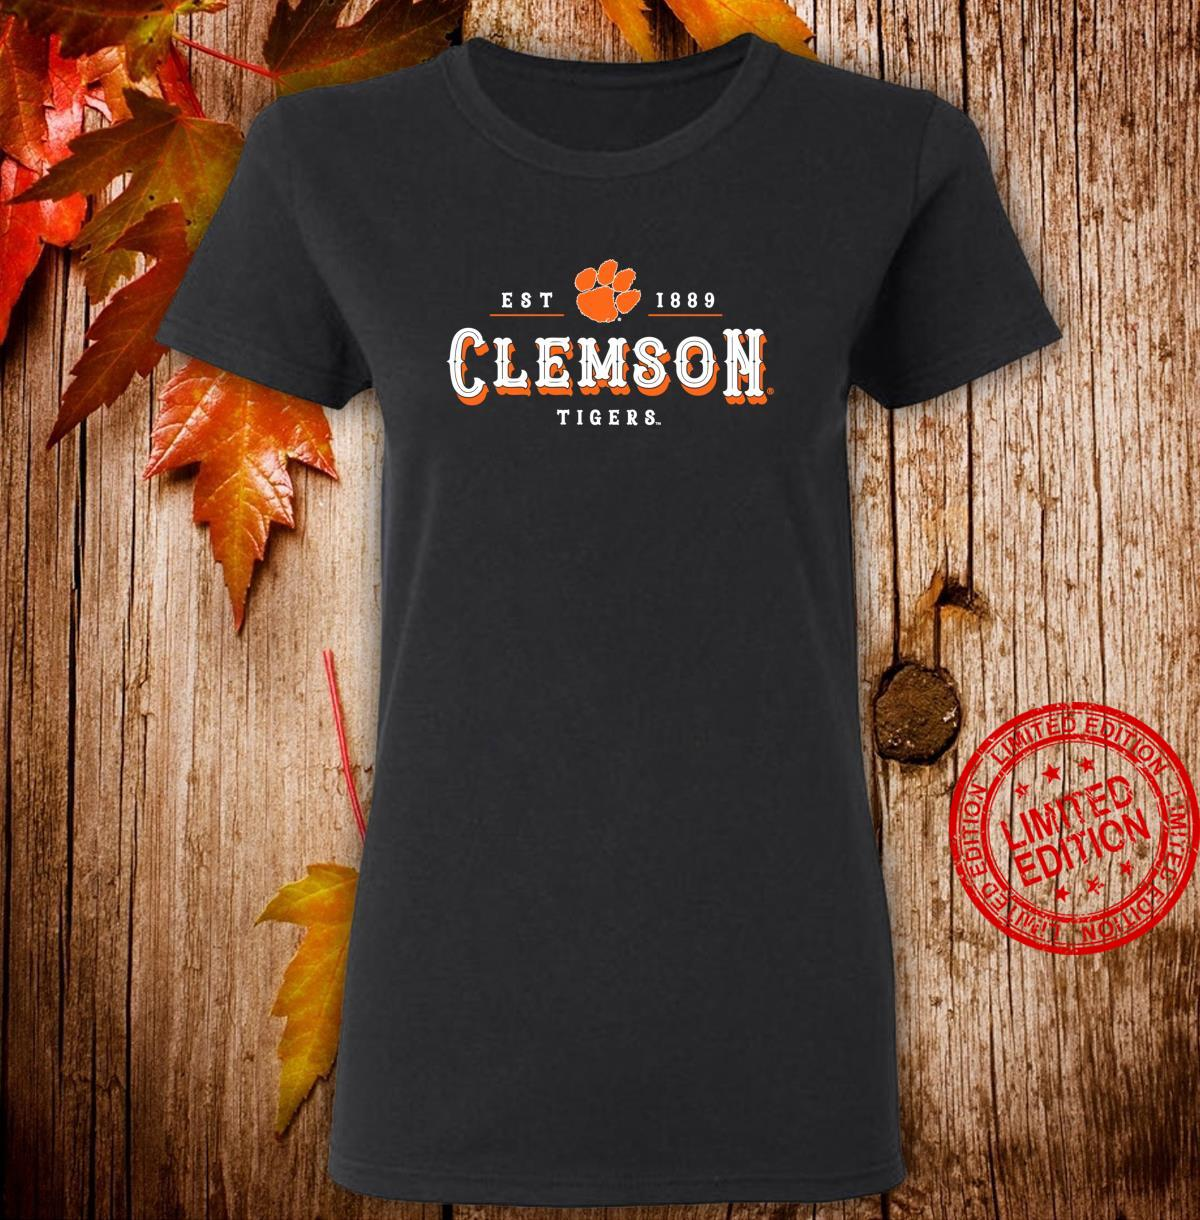 Clemson Tigers's College NCAA Shirt RYLCL12 Shirt ladies tee